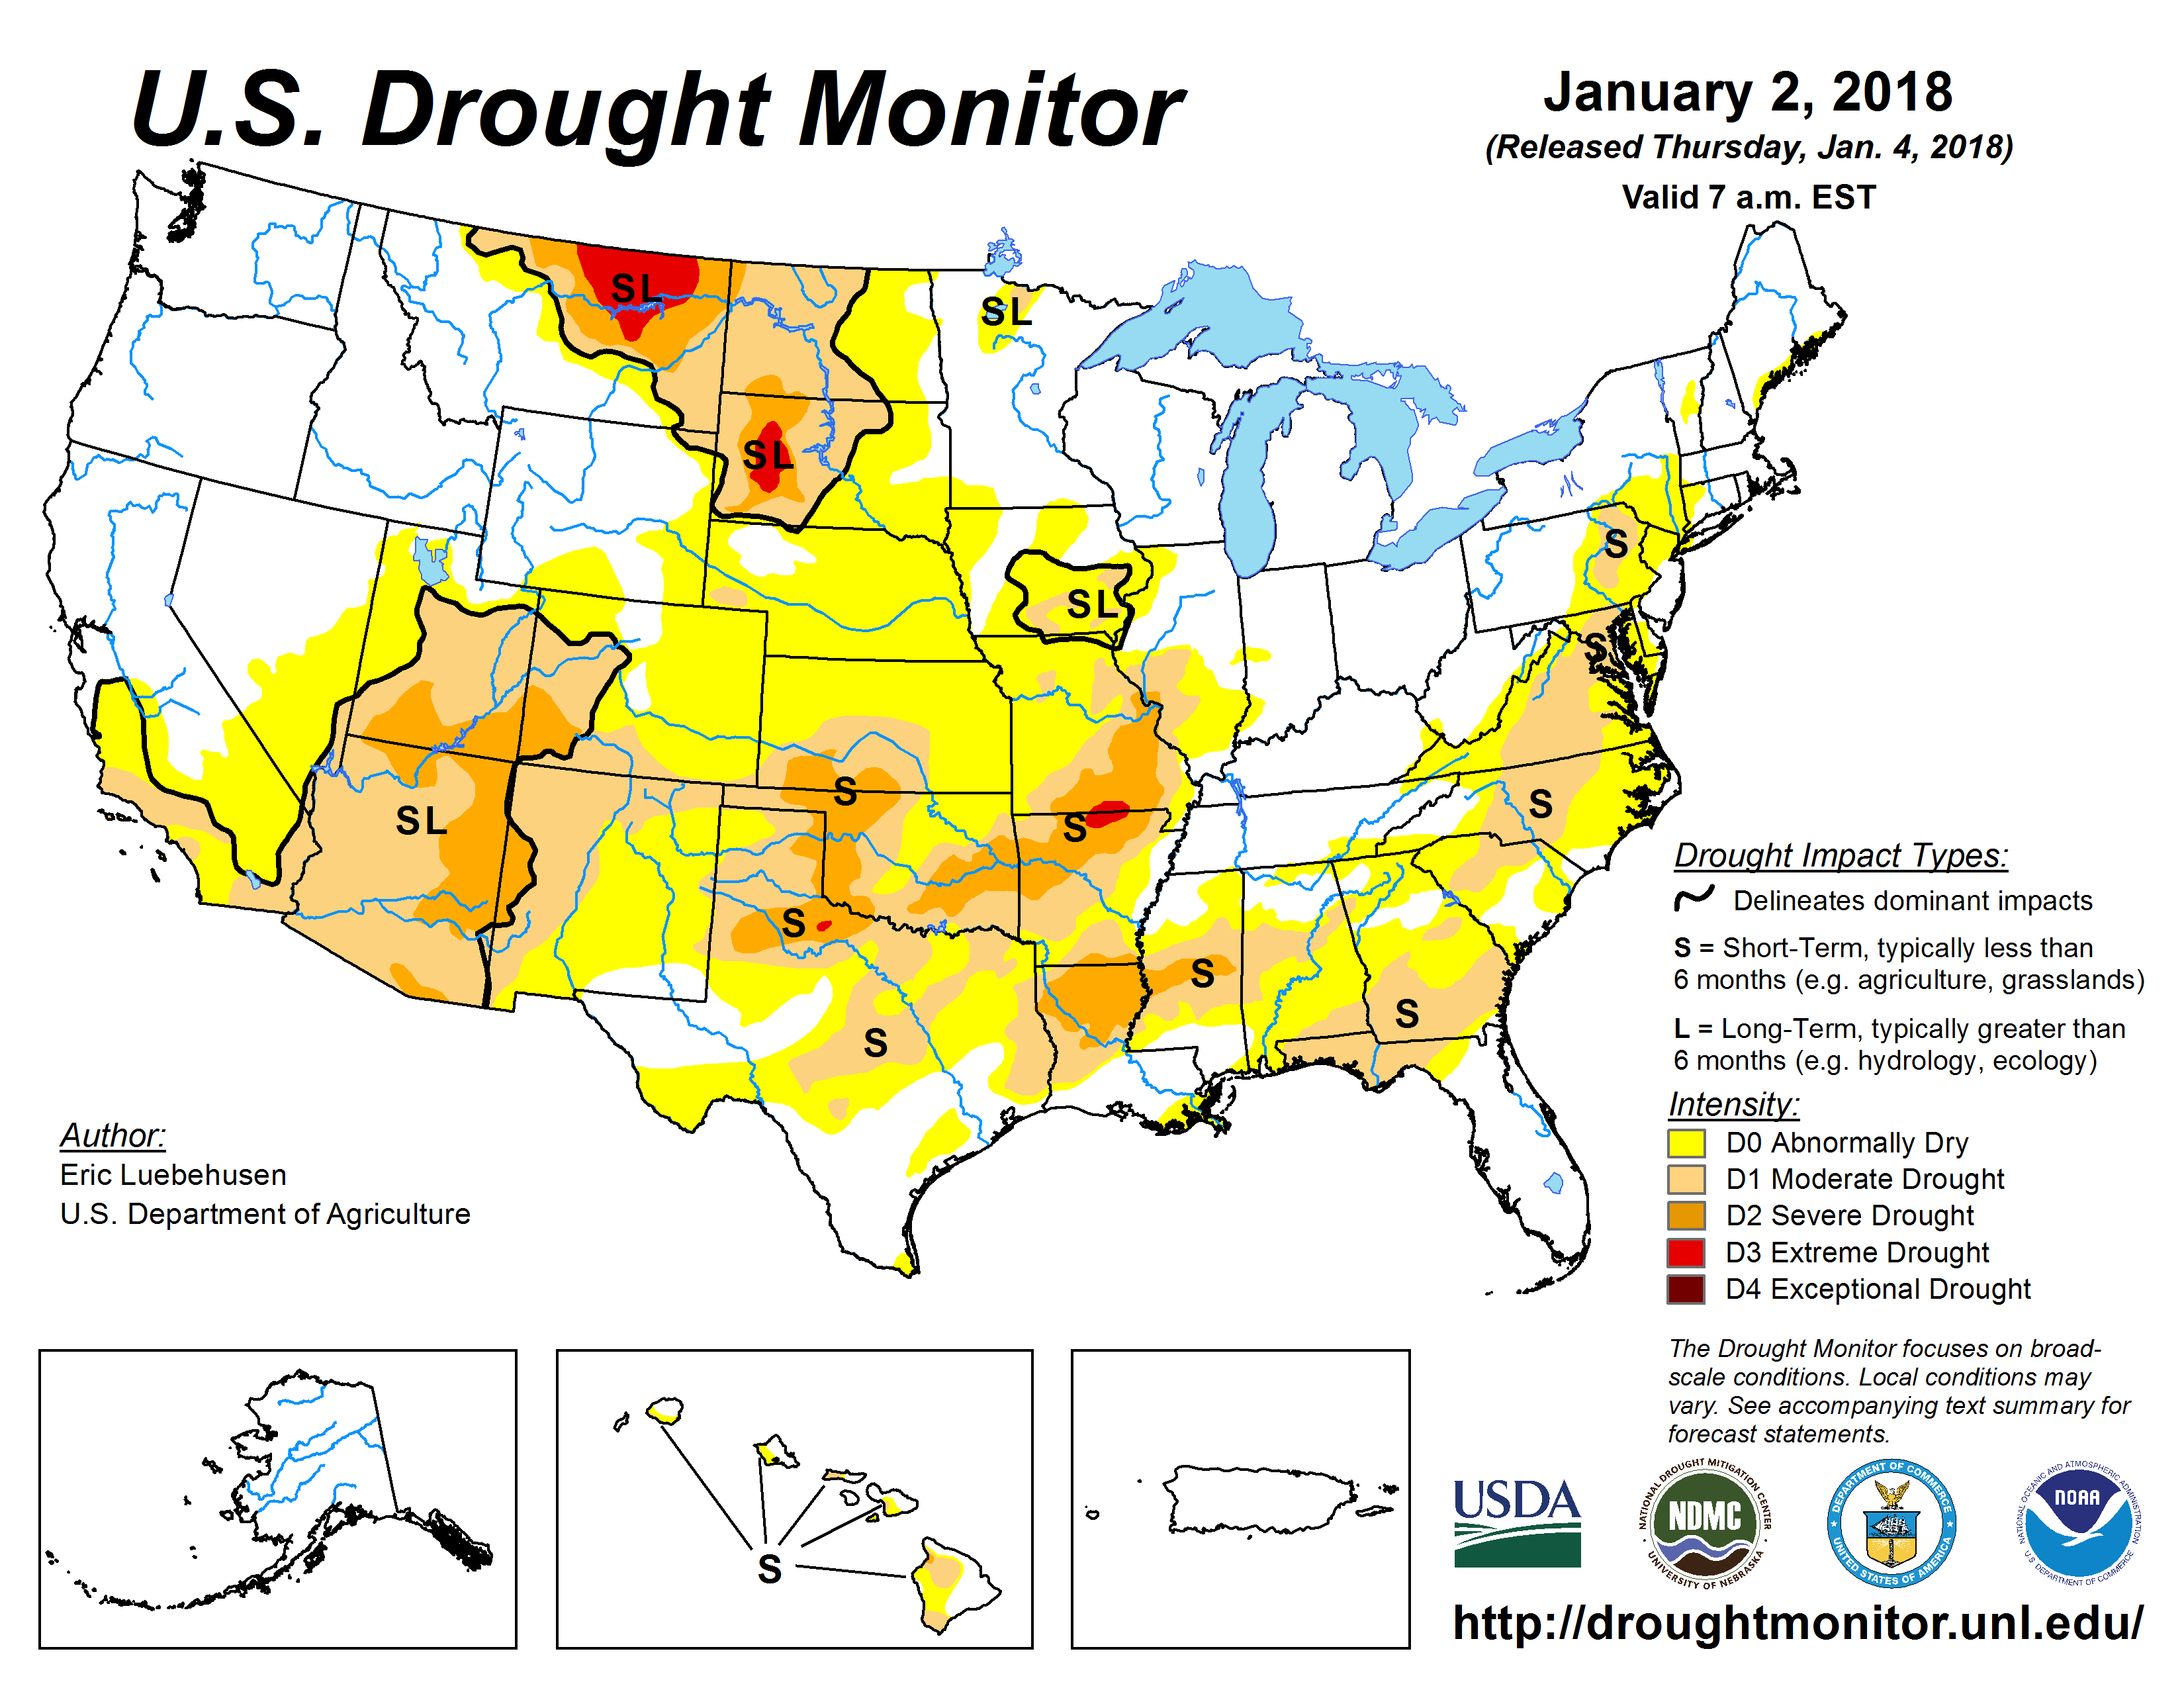 The U.S. Drought Monitor drought map valid January 2, 2018